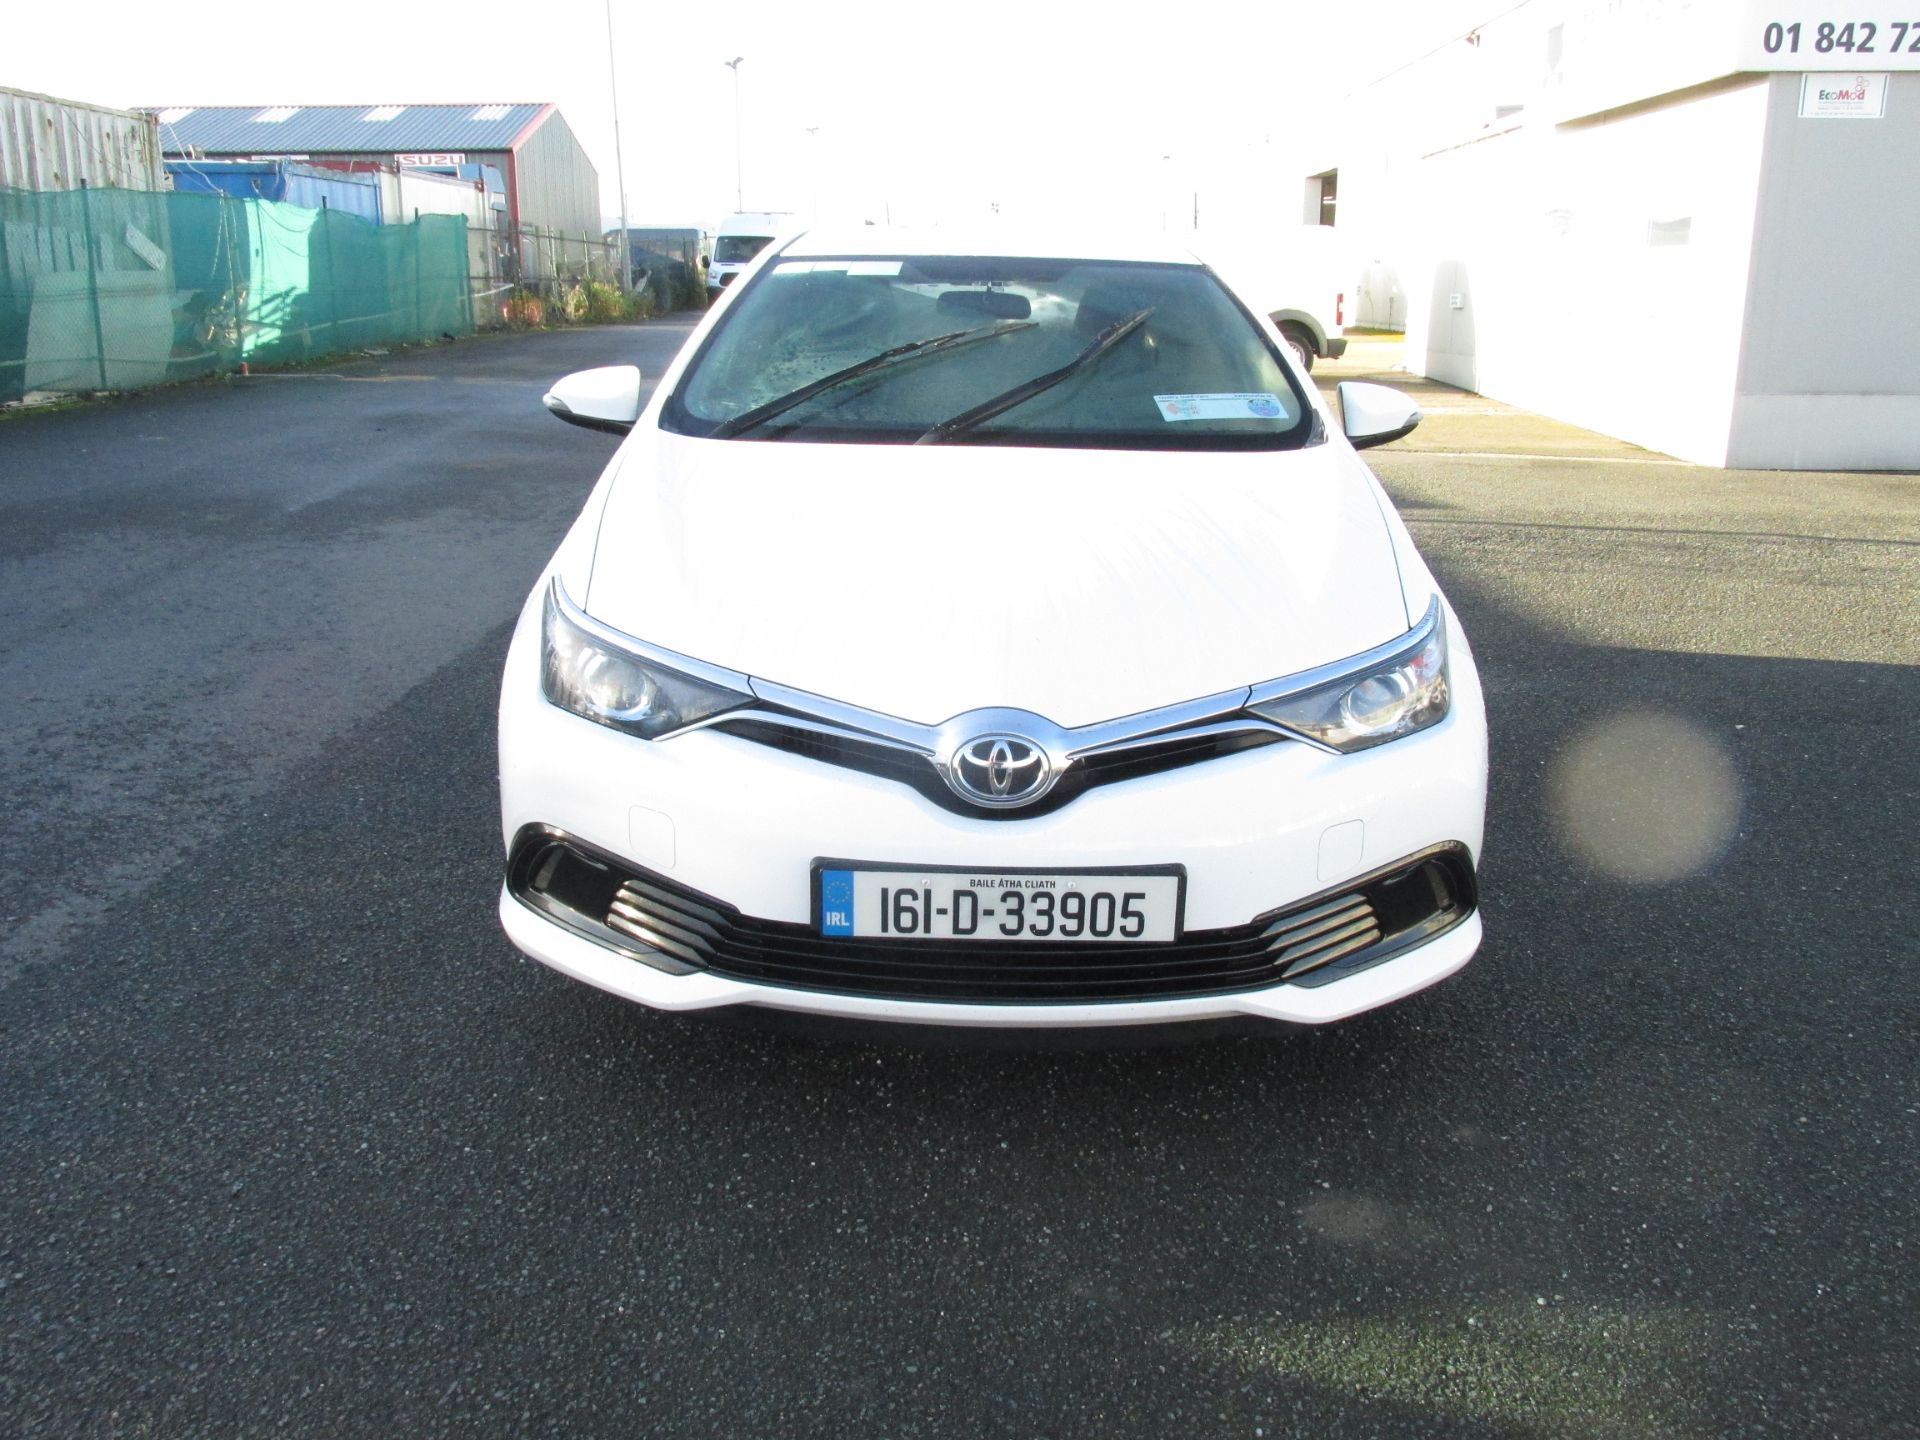 2016 Toyota Auris 1.4d-4d Terra 4DR click and collect call sales for more info (161D33905) Image 2